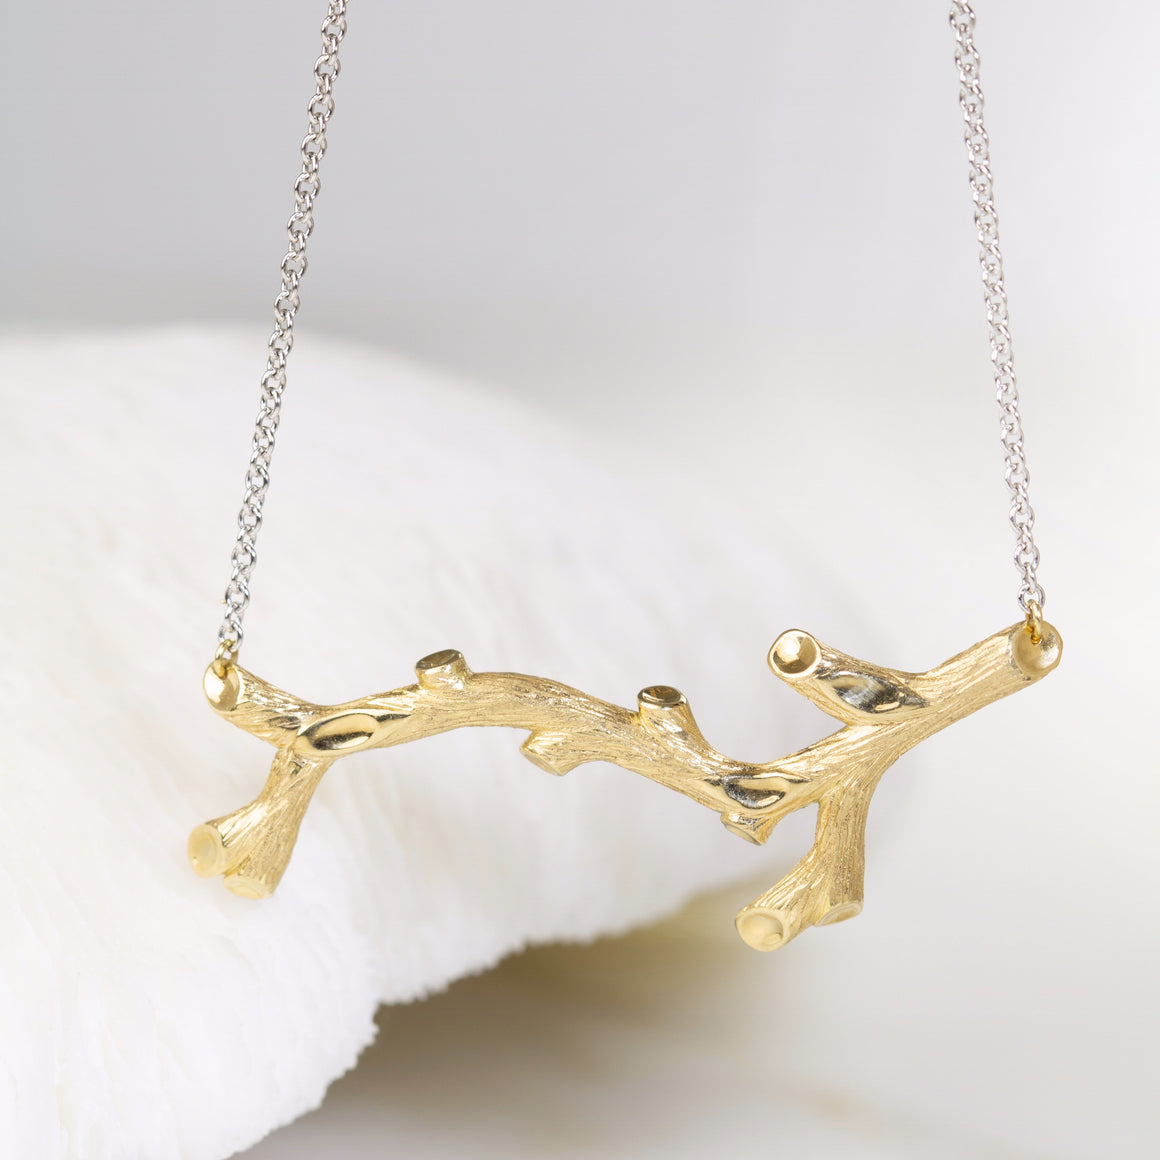 Woodland Branch Necklace in Yellow Gold with a White Gold Chain